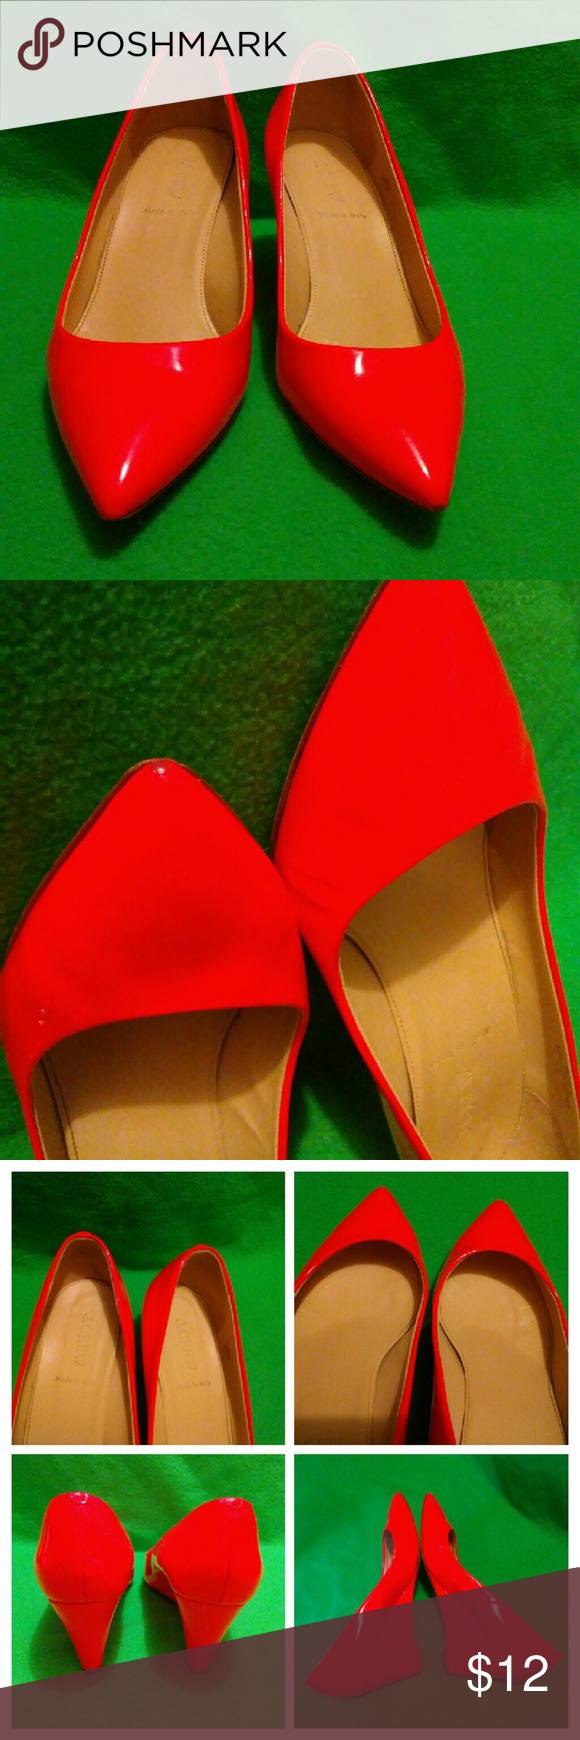 J.Crew pointy wedges Size 8 True to size Burnt orange very bright  color 2nd photo show little scratch and cover up with nail polish. Normal sight of wear J. Crew Shoes Wedges